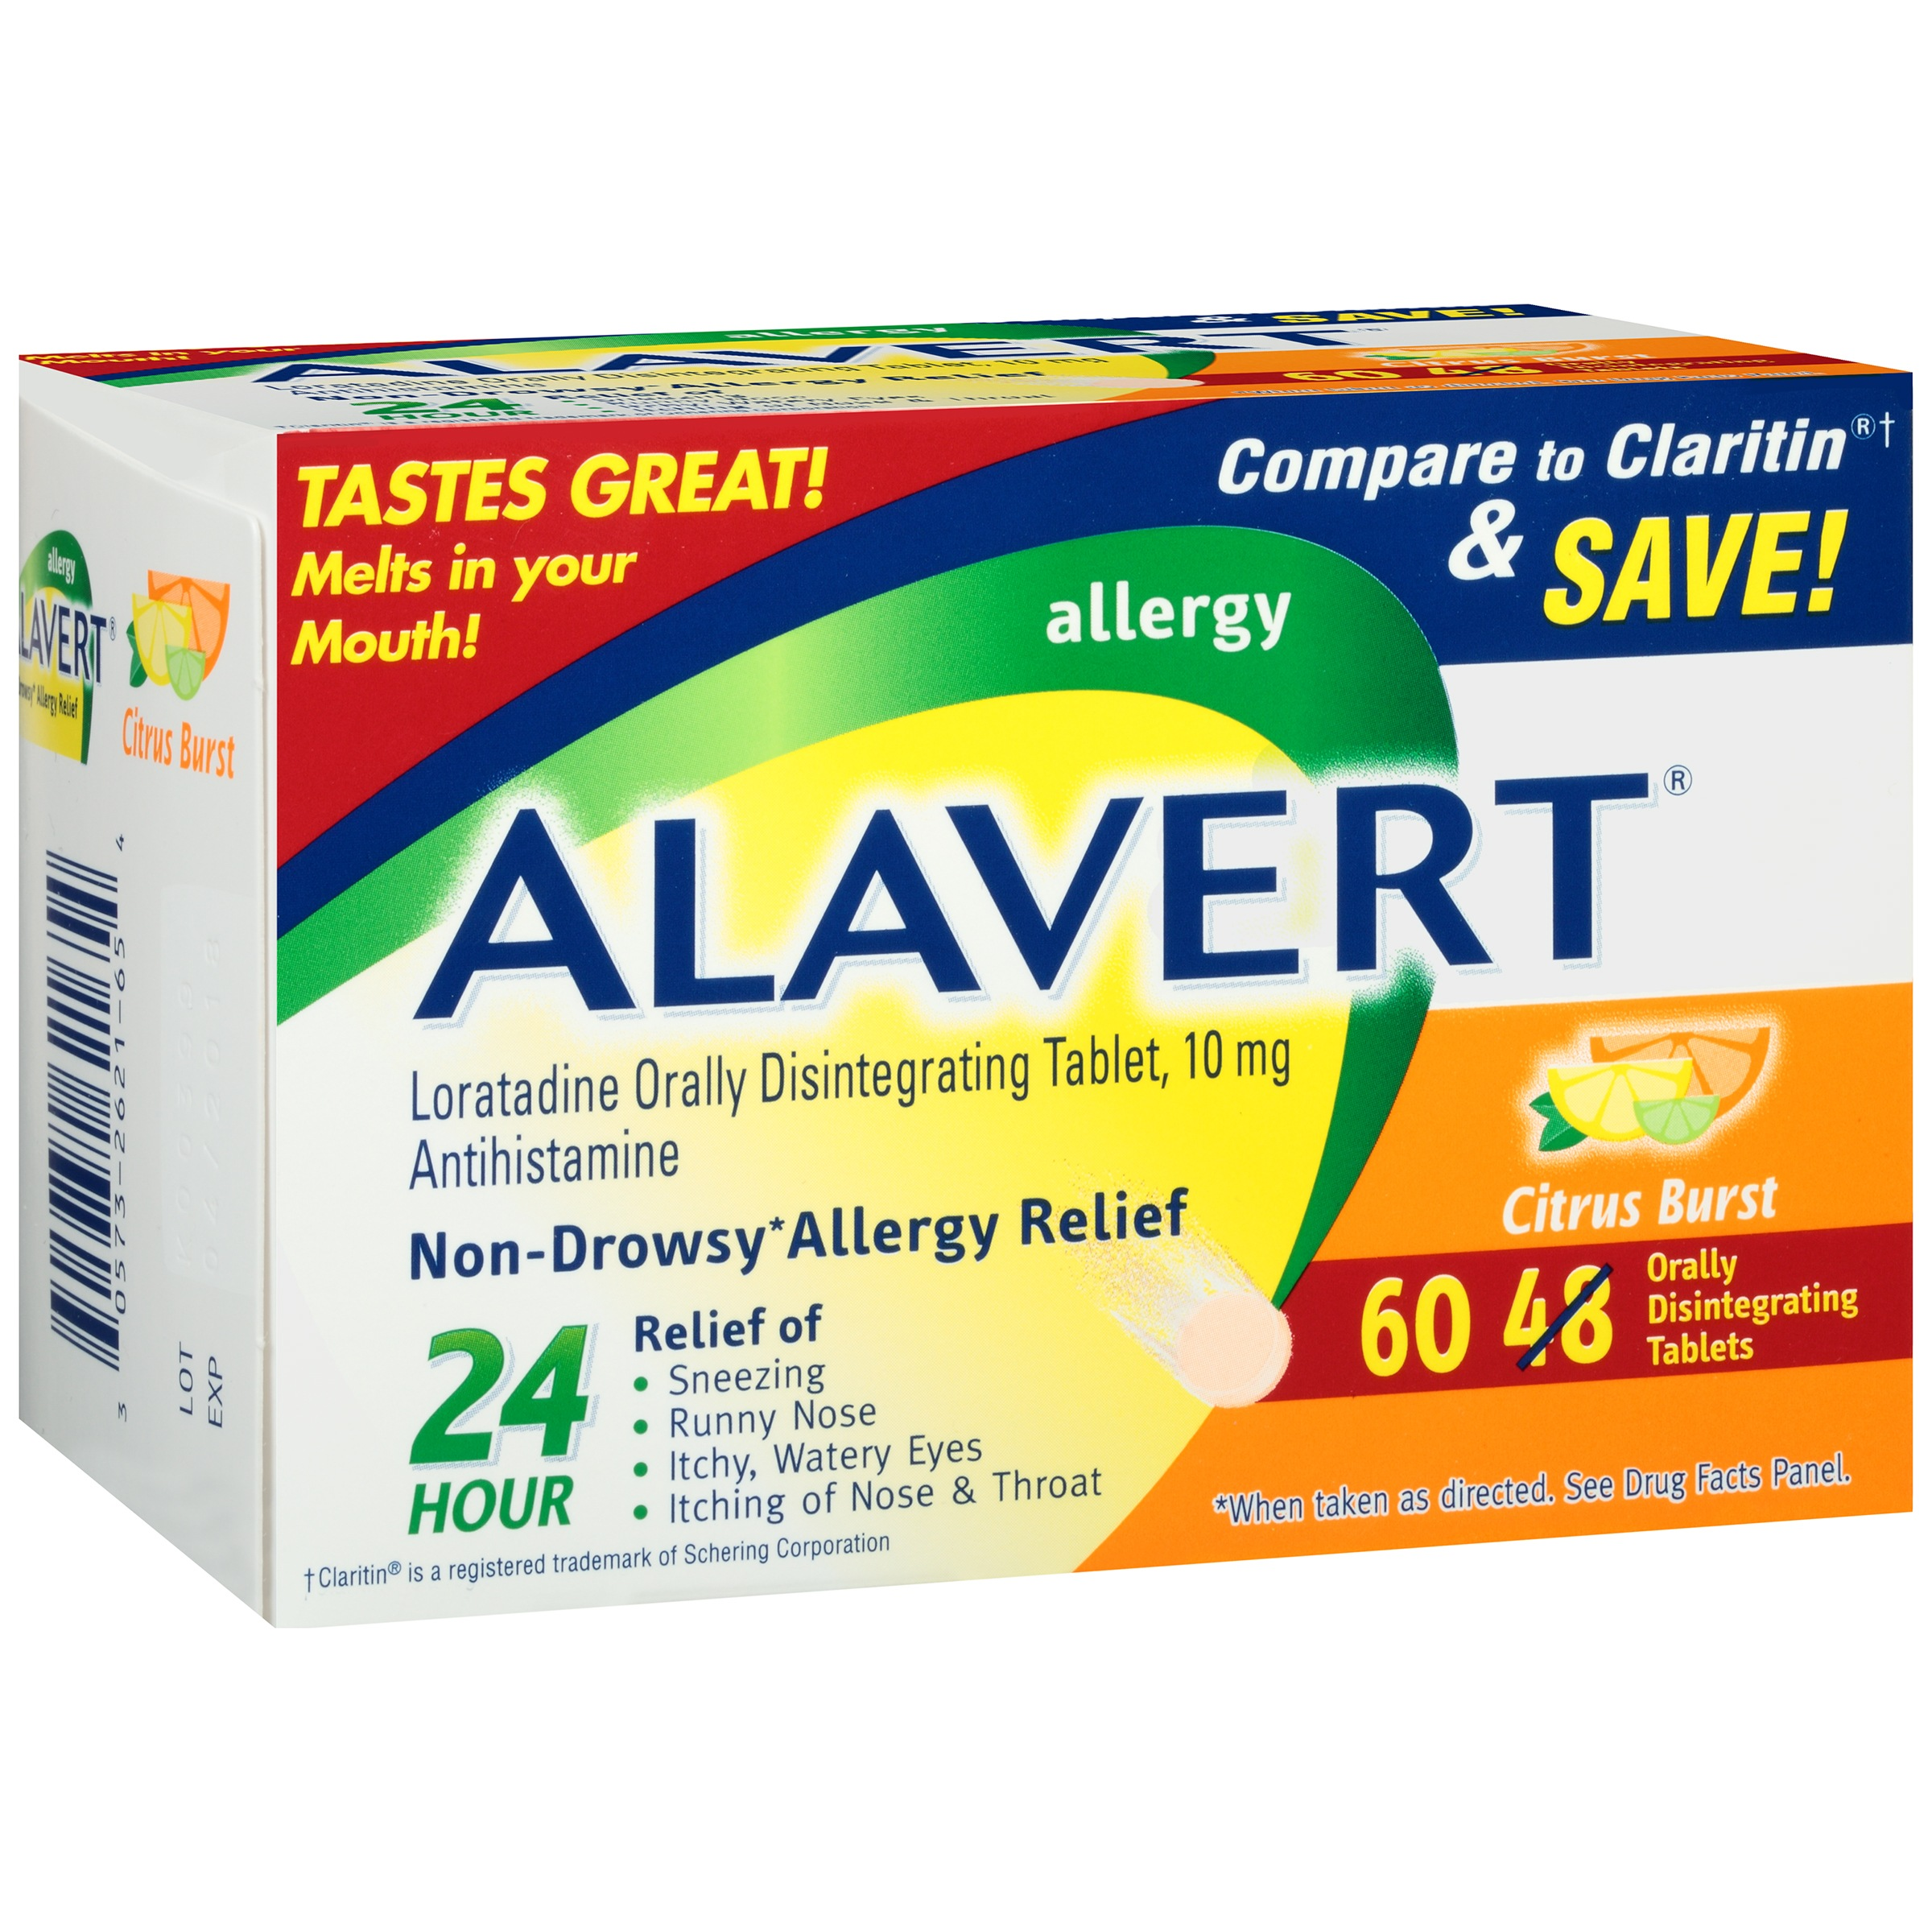 Alavert Allergy Orally Disintegrating Tablets, 10mg, Citrus Burst, 60 ct